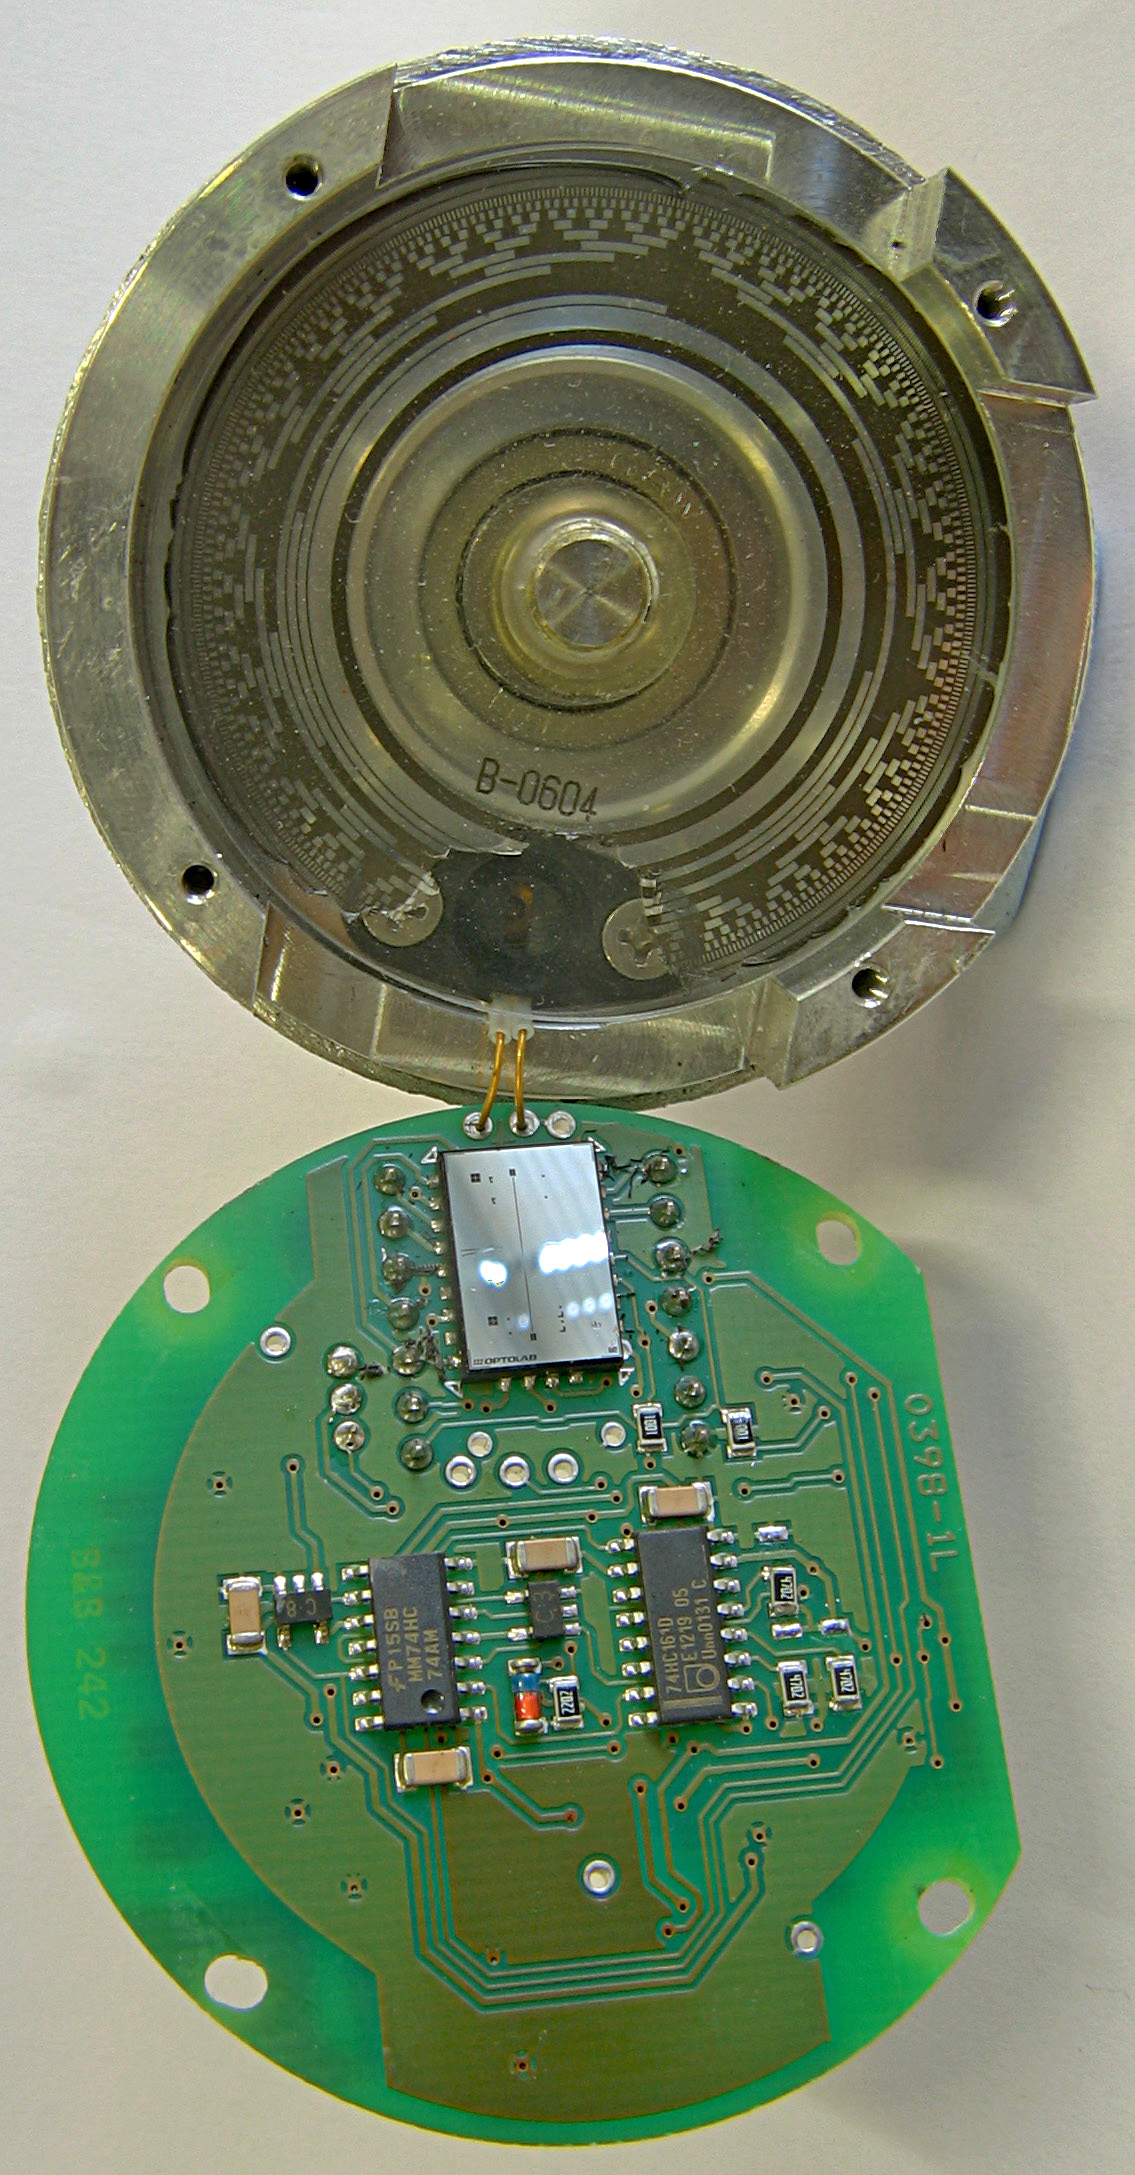 Rotary Encoder Wikipedia Circuit Optical Interrupter Draws Microamps Circuits Designed By